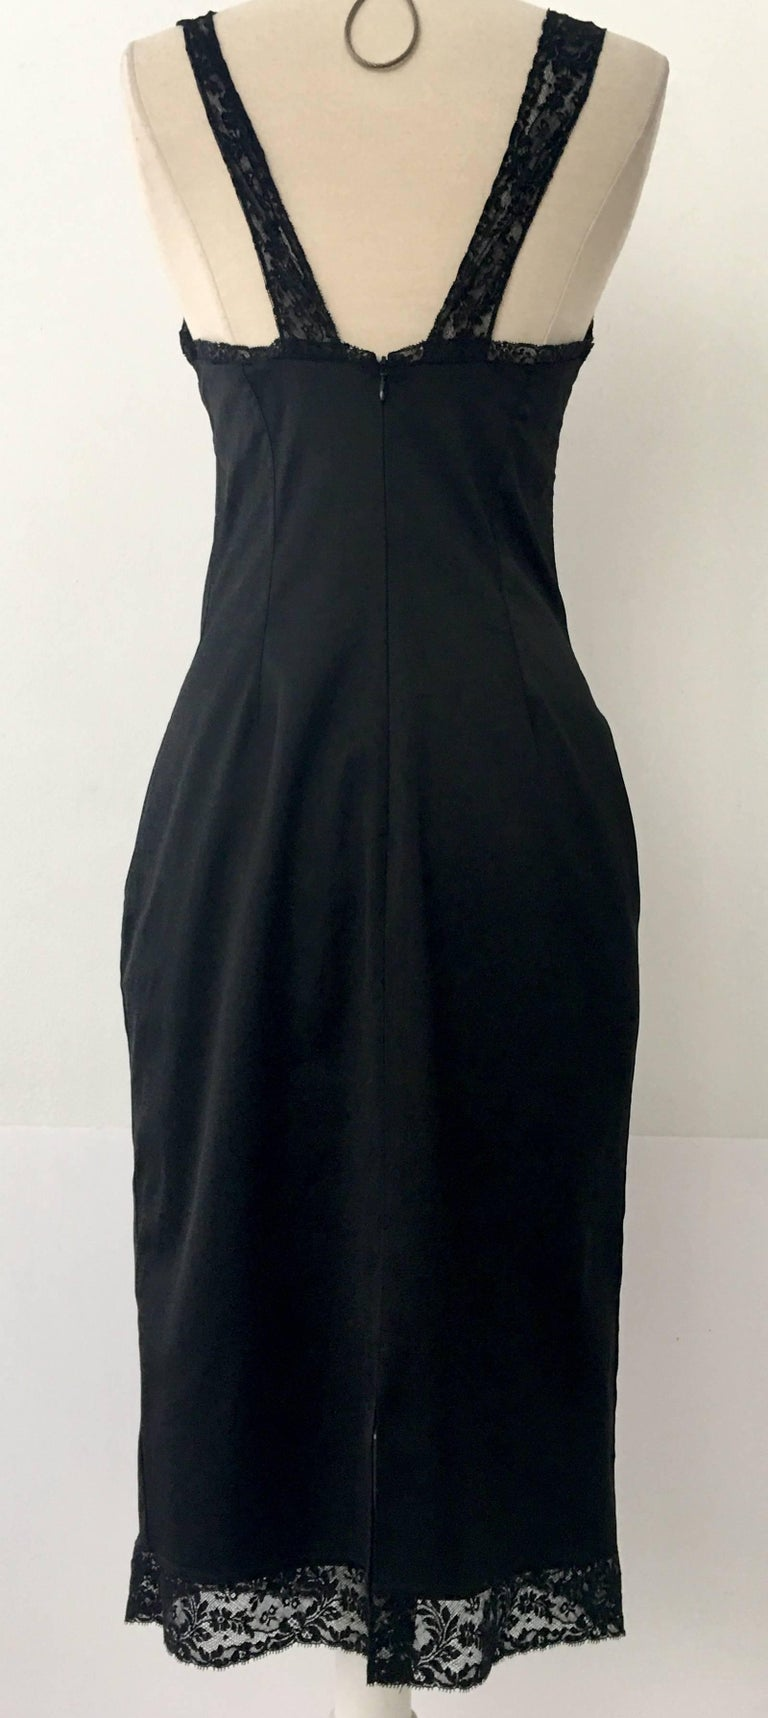 90'S Classic Dolce & Gabbana Black Fitted Slip Dress Sz-40 In Good Condition For Sale In West Palm Beach, FL